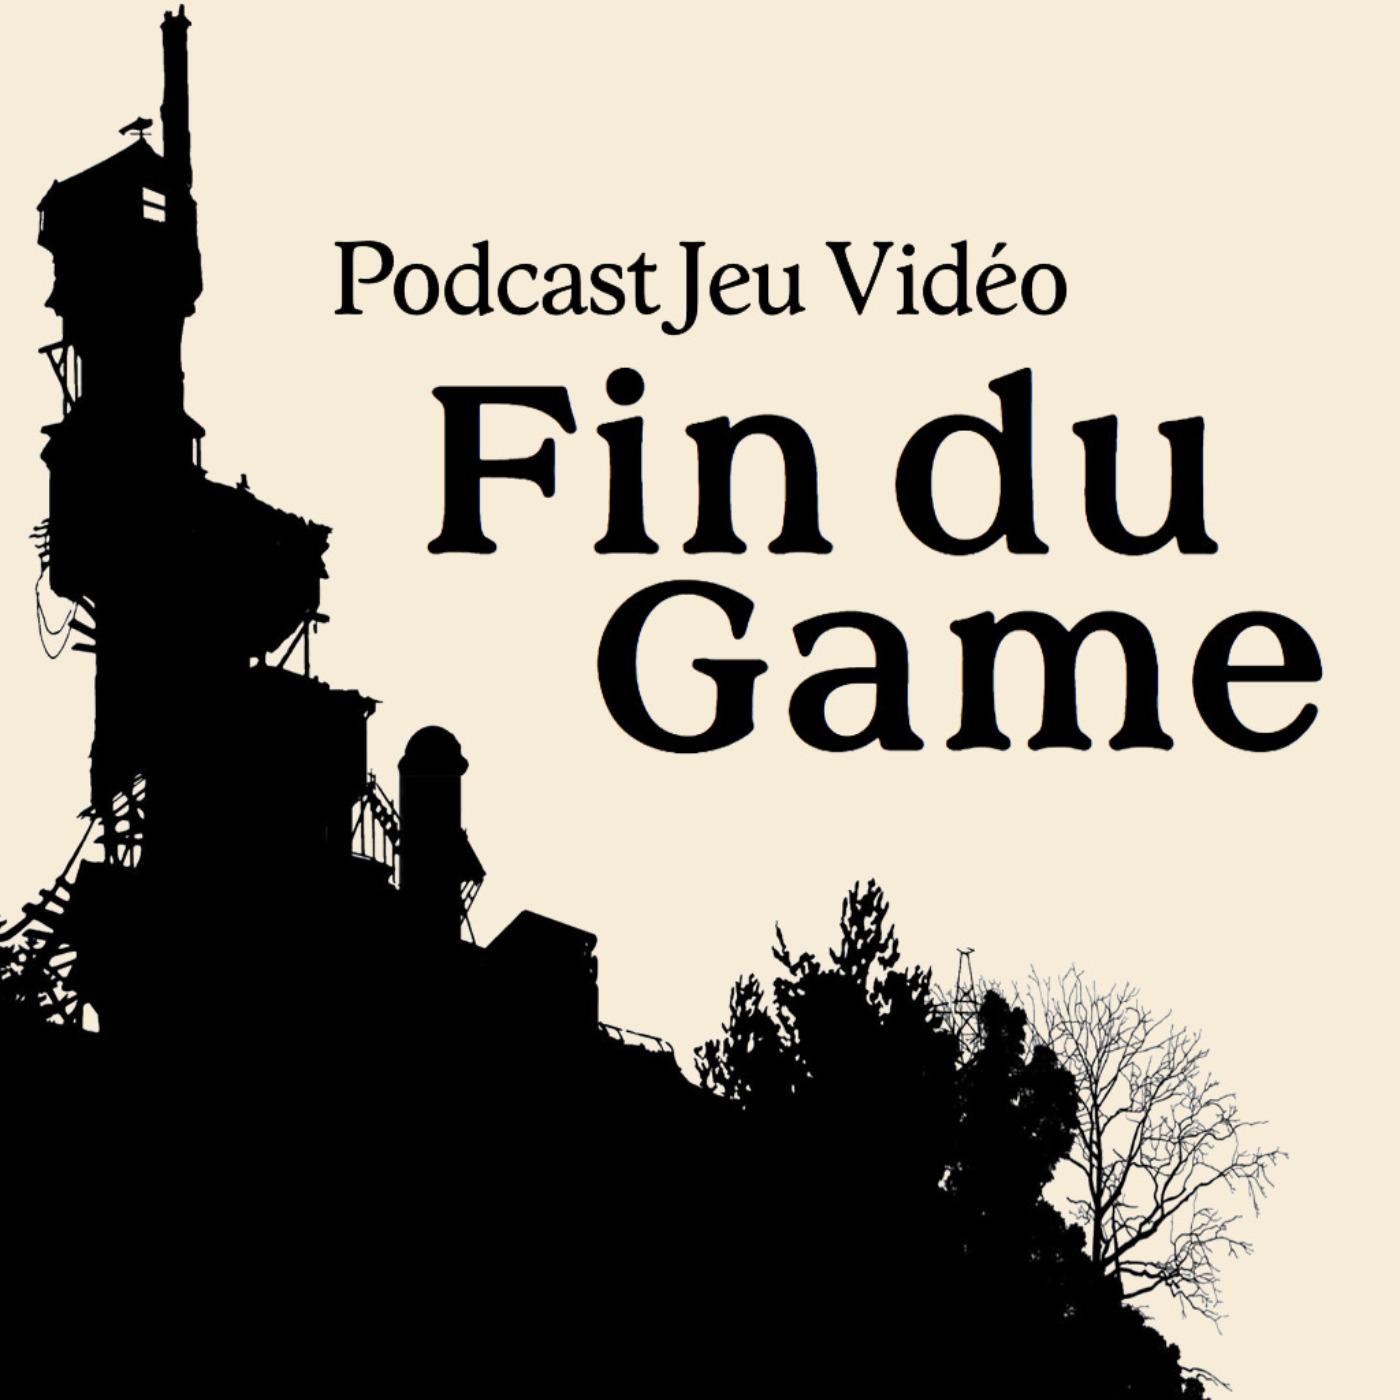 Episode 8 - What Remains of Edith Finch